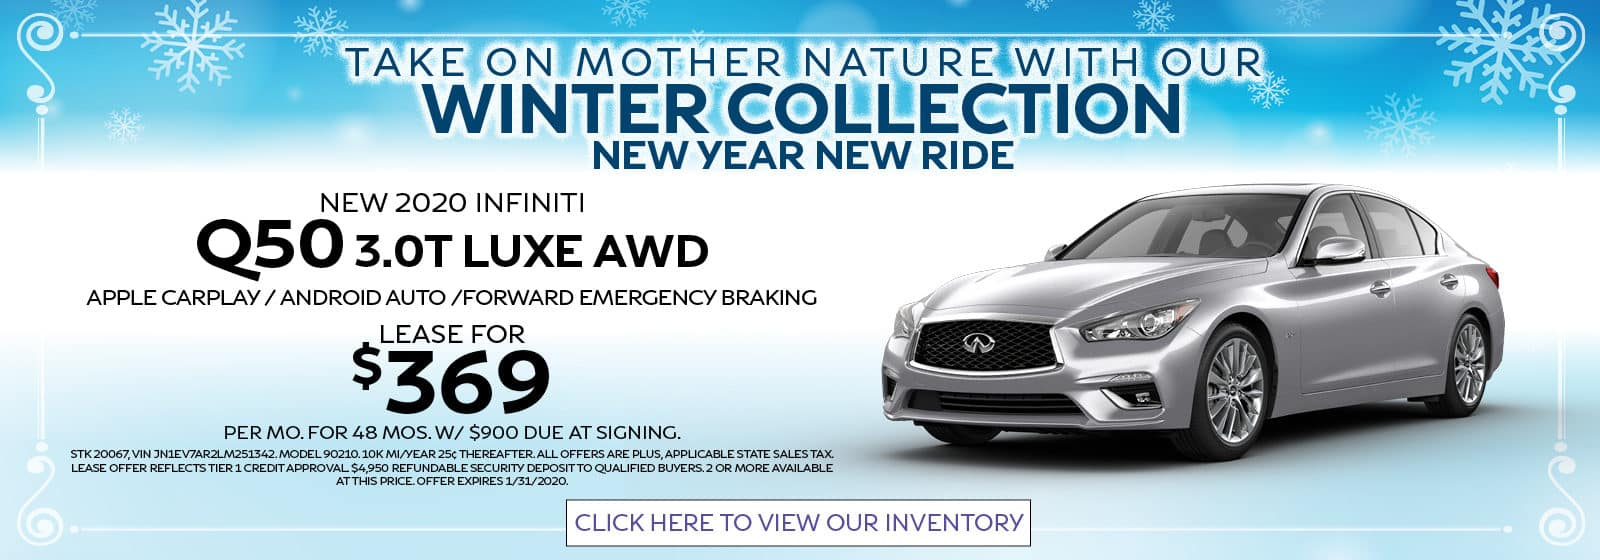 2020 Q50 Winter Collection Lease for $369